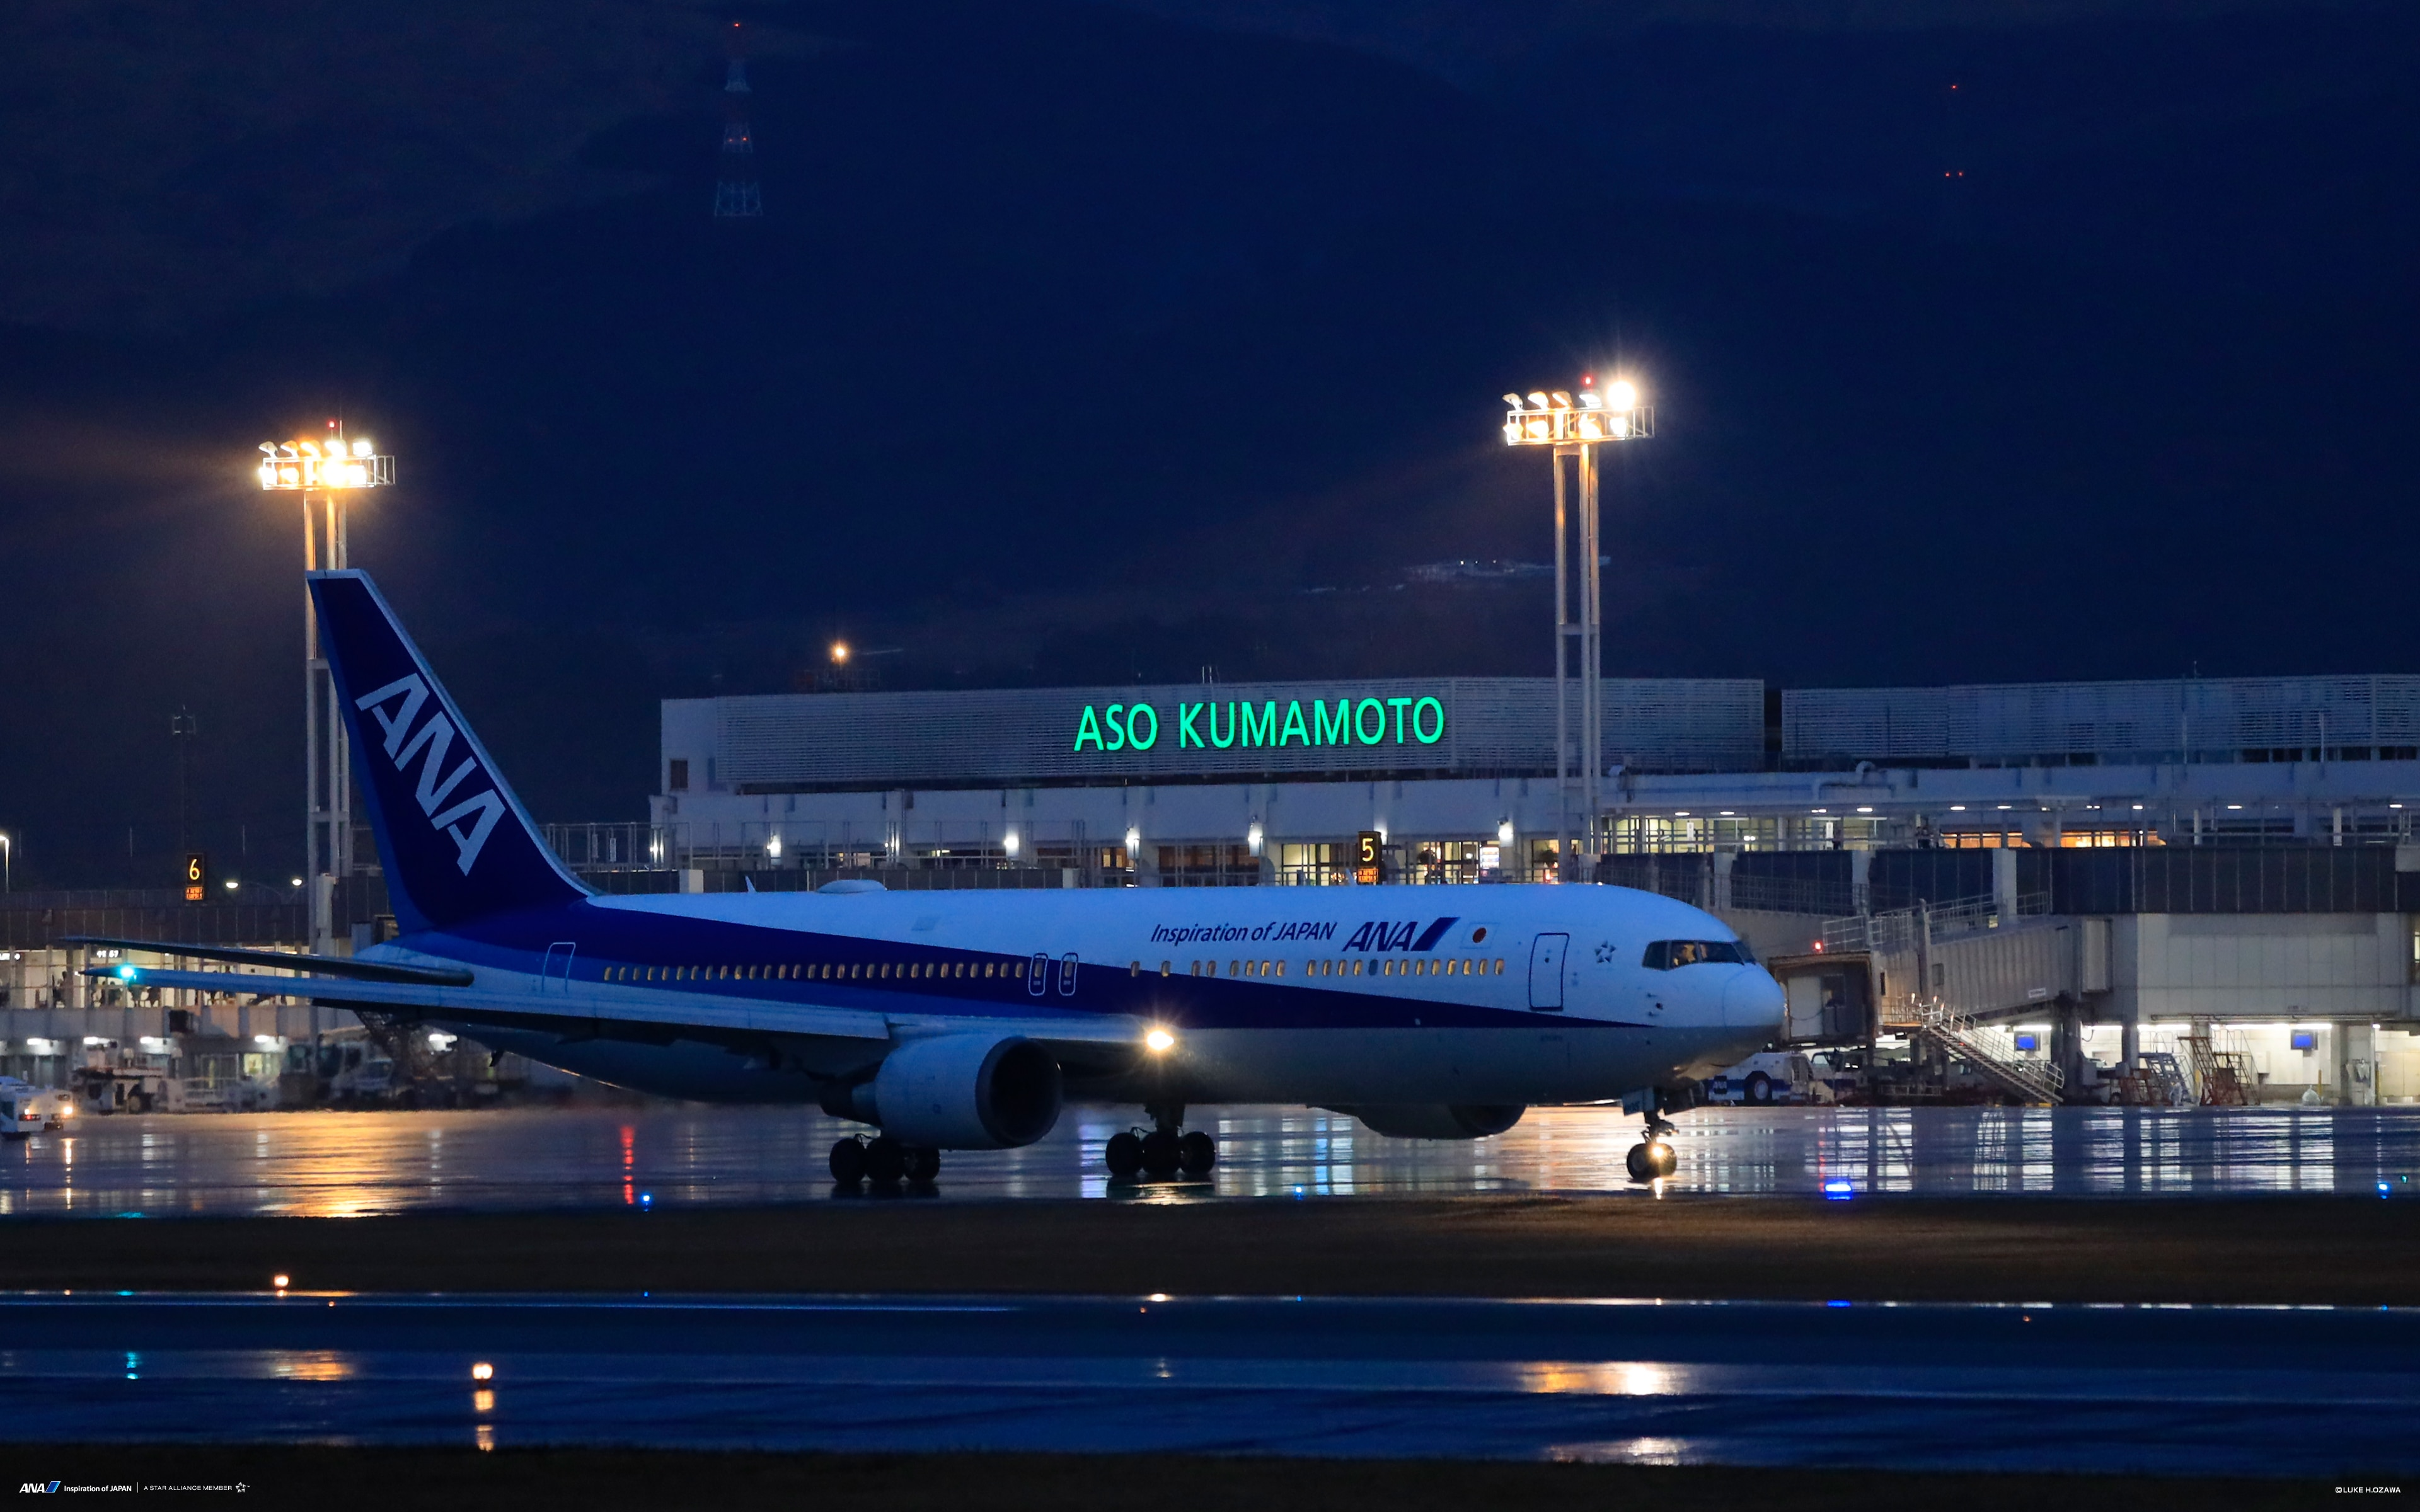 Boeing 767 ANA aircraft